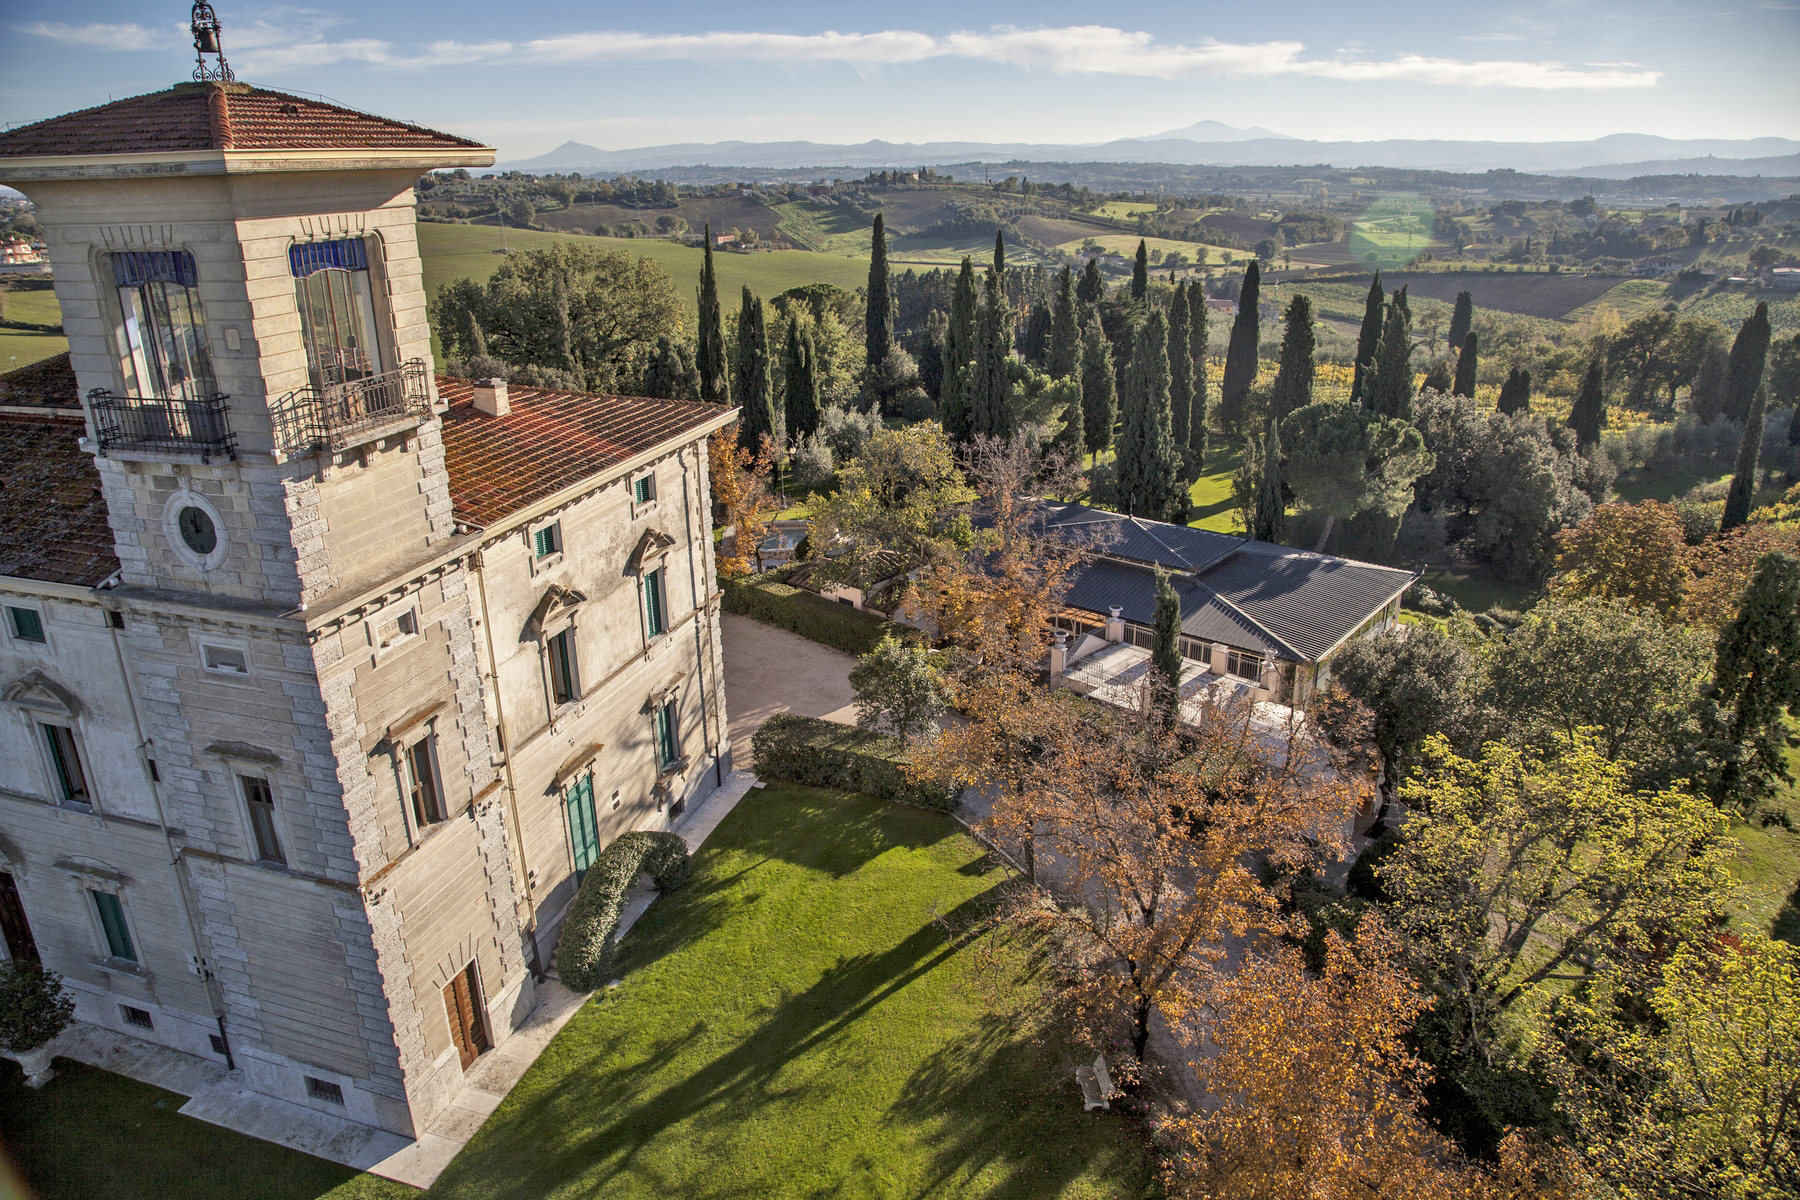 Additional photo for property listing at Magnificent liberty style villa in the heart of Tuscany Foiano della Chiana Arezzo, Arezzo 52045 Italy